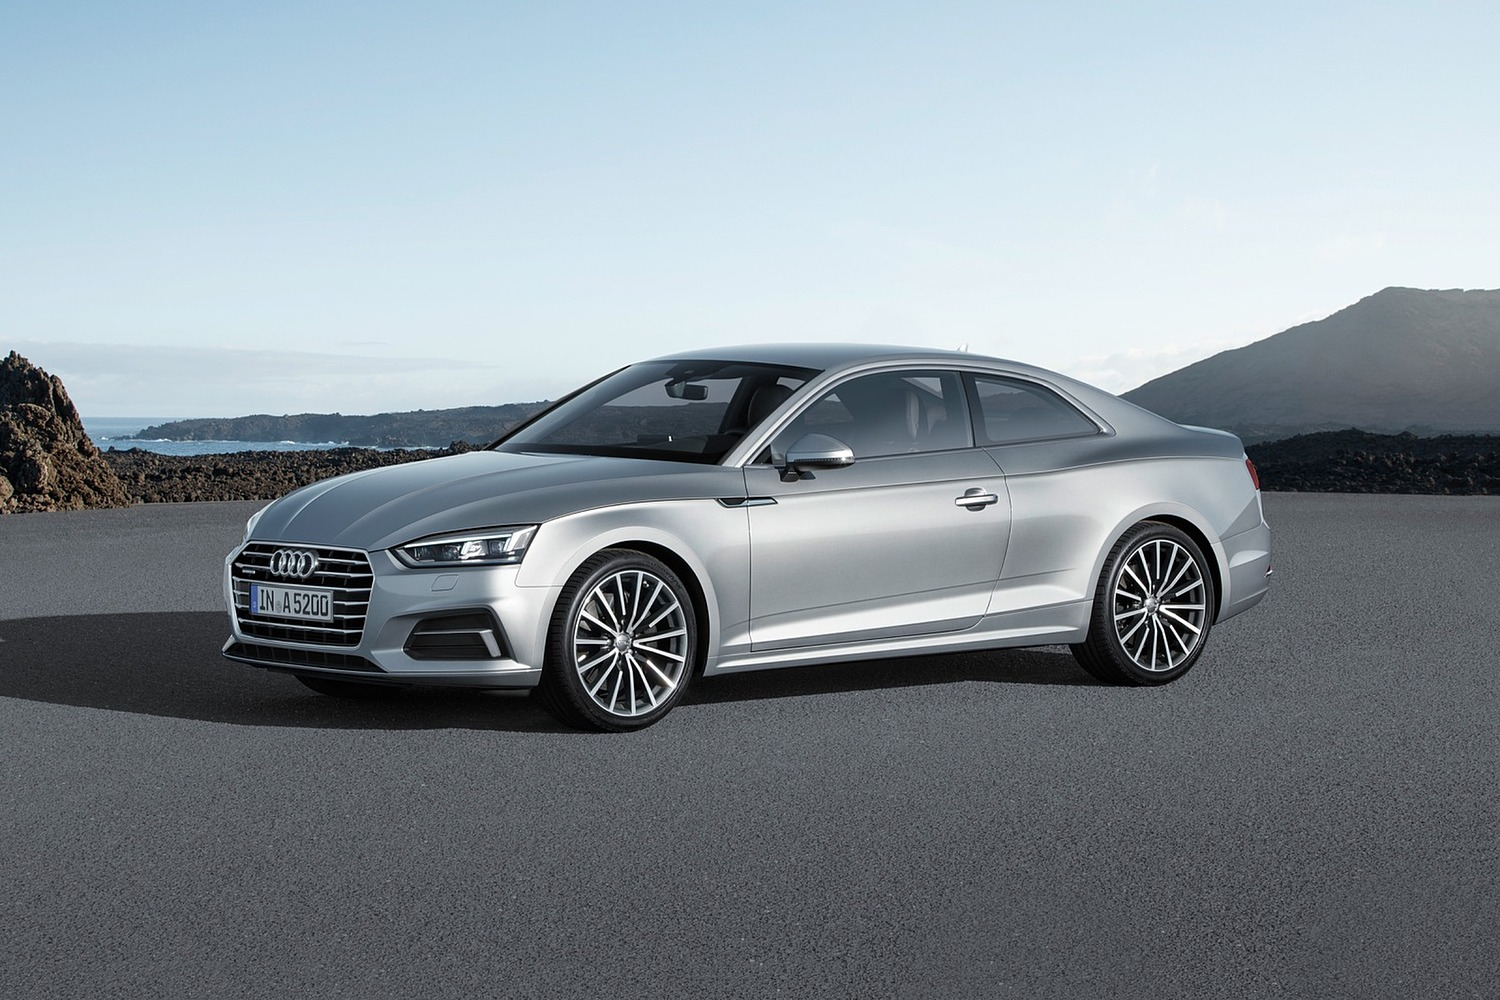 2018 Audi A5 Prestige quattro Coupe Exterior. European Model Shown.